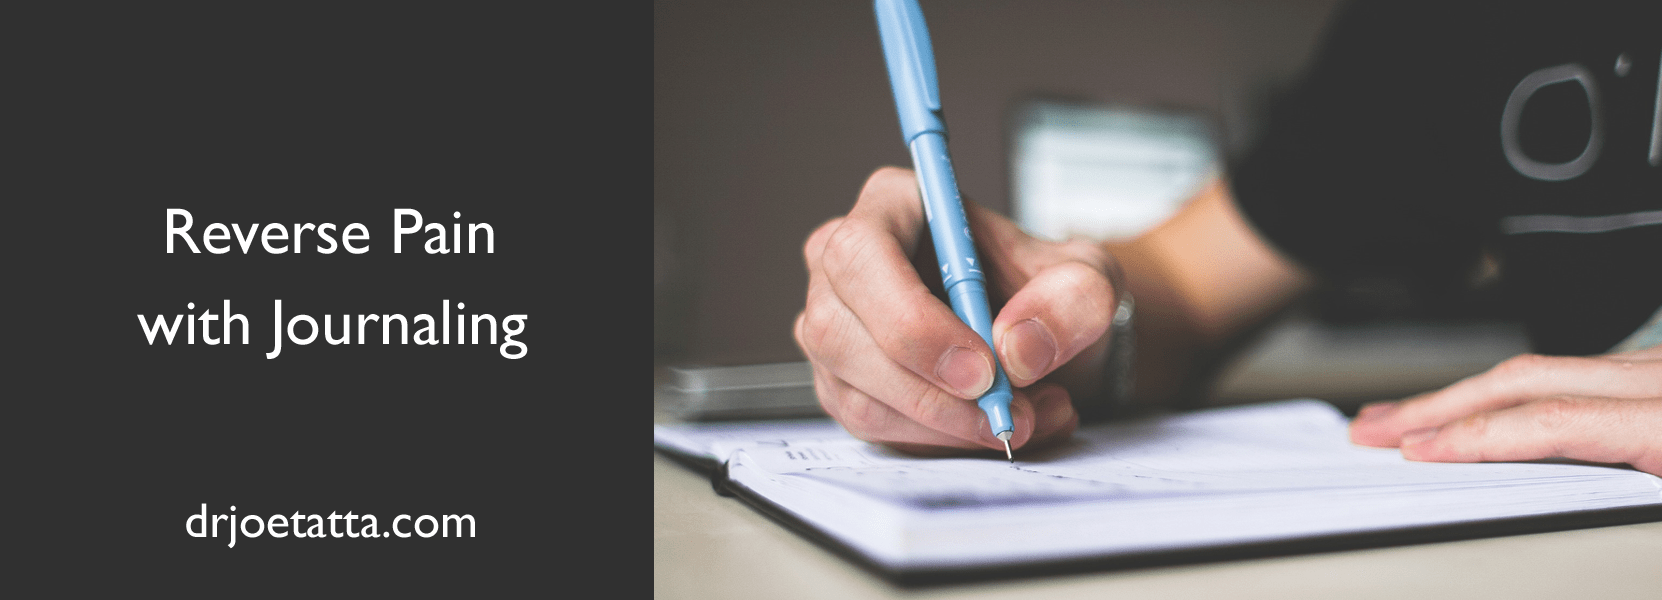 Reverse Pain With Journaling